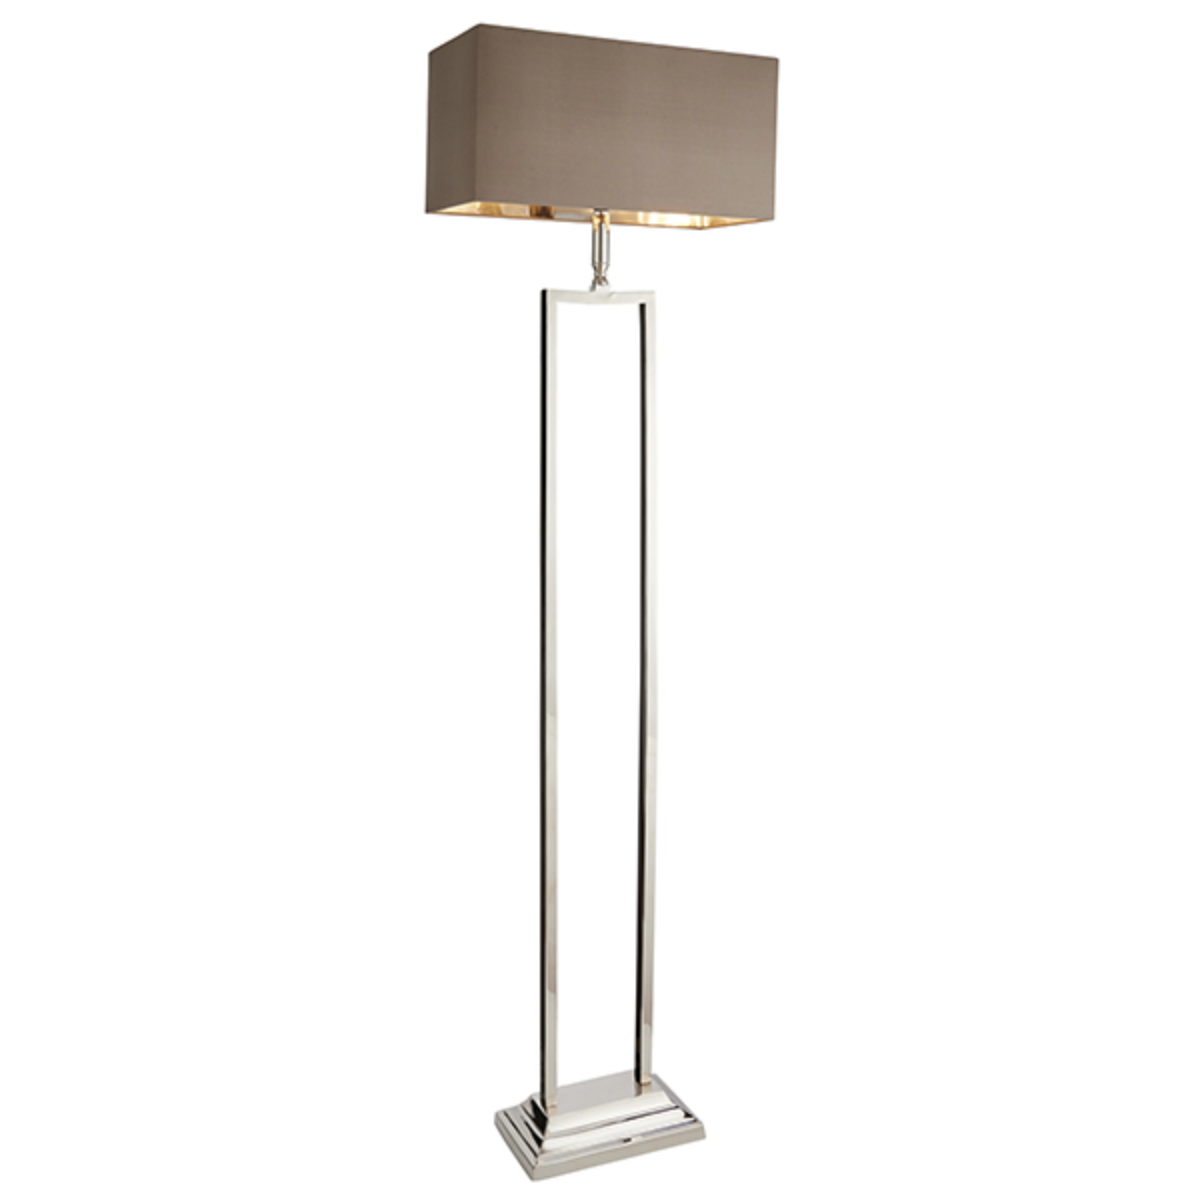 Polished Nickel Rectangular Floor Lamp - ID 6591